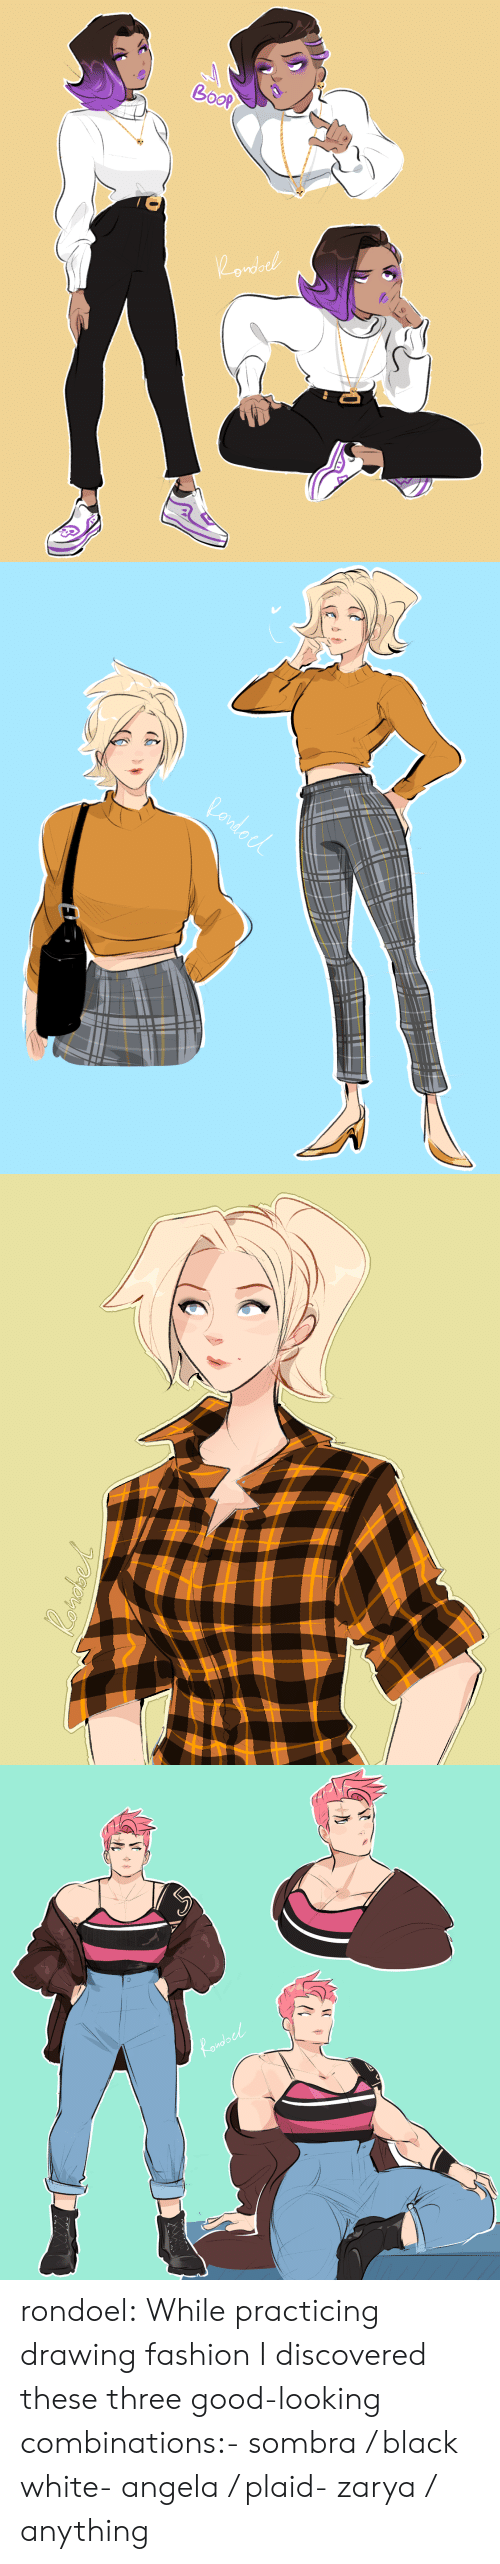 plaid: do rondoel:  While practicing drawing fashion I discovered these three good-looking combinations:- sombra / black  white- angela / plaid- zarya / anything